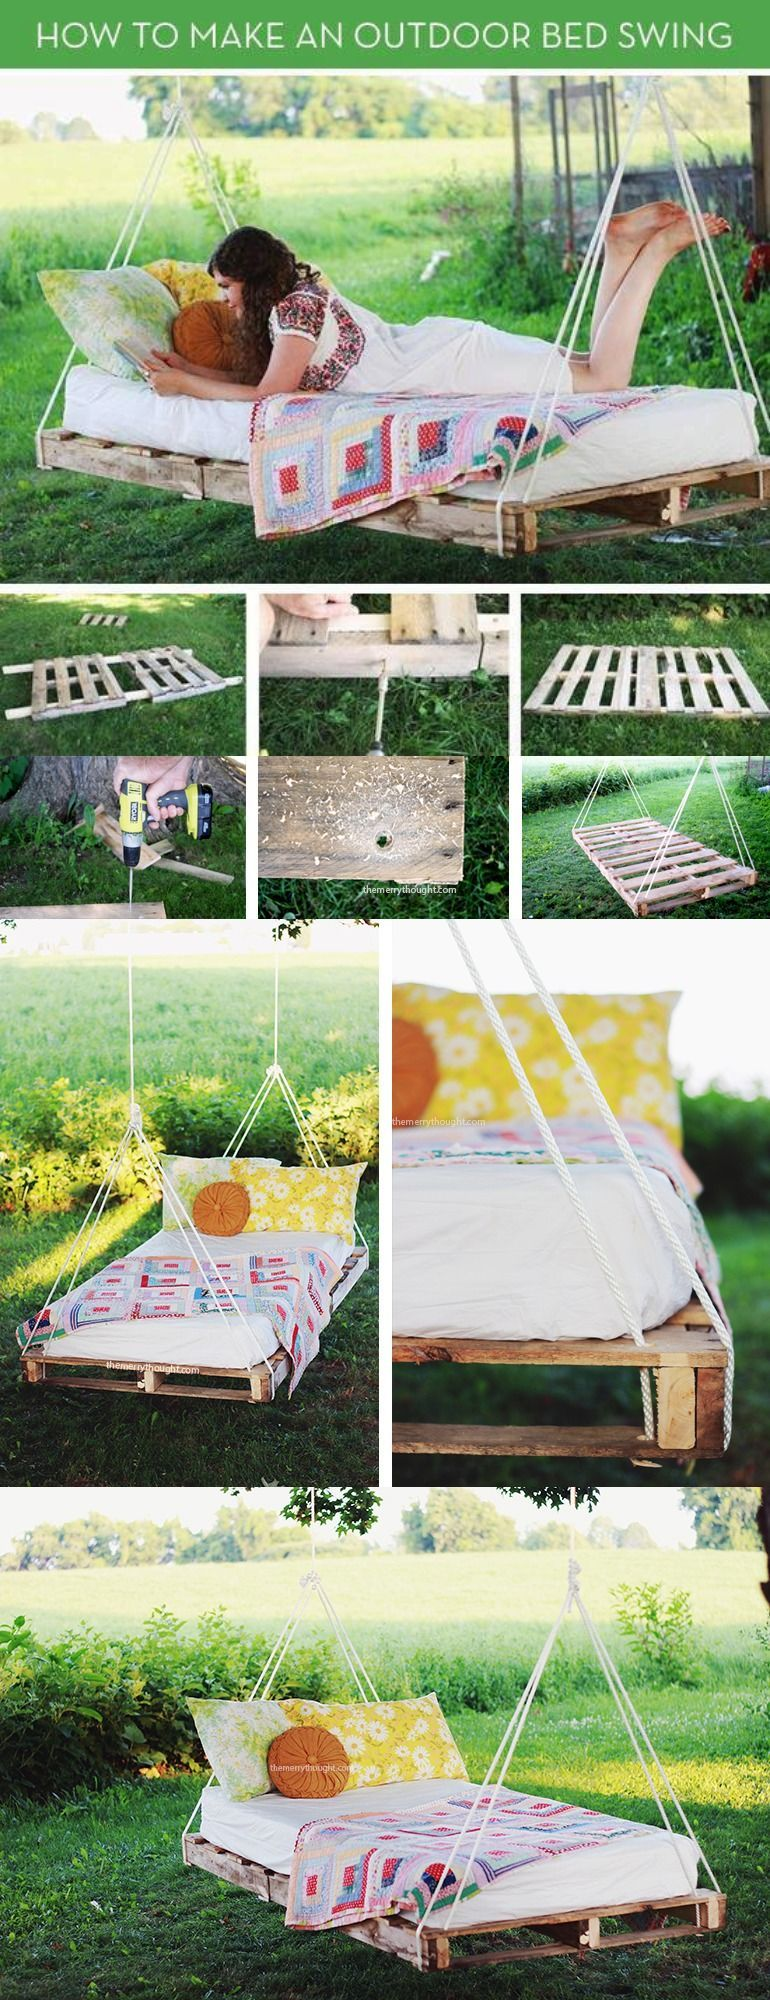 Outdoor bed tumblr - Diy Pallet Swing Bed Pictures Photos And Images For Facebook Tumblr Pinterest